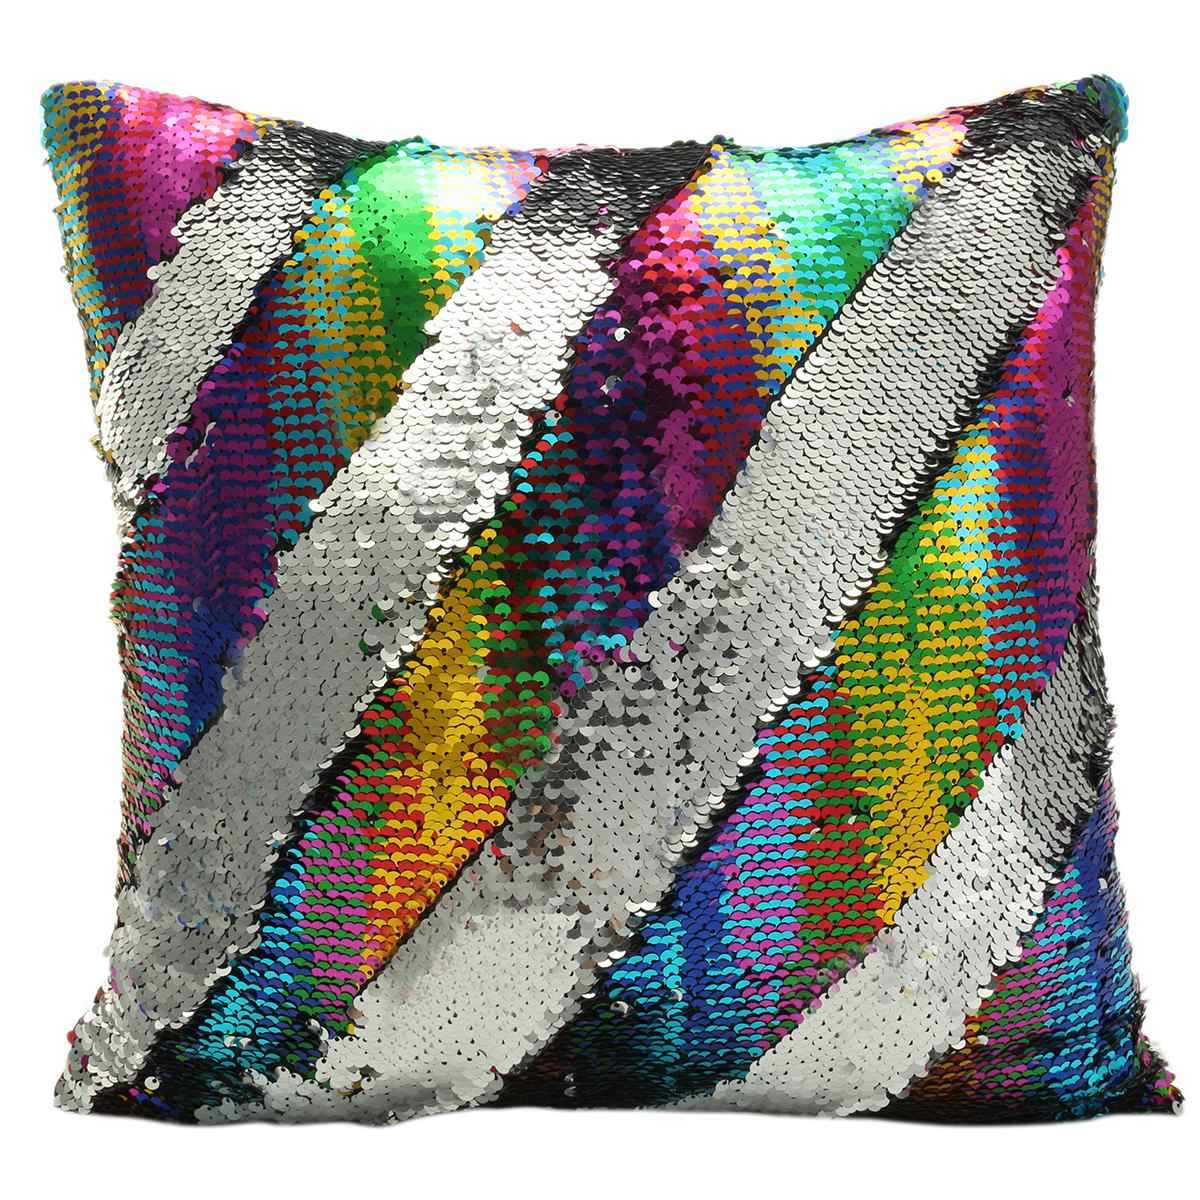 40X40cm DIY Mermaid Sequin Cushion Cover Reversible Mermaid Pillow Sequin Cover Glitter Sofa Cushion Case Double Color For Home